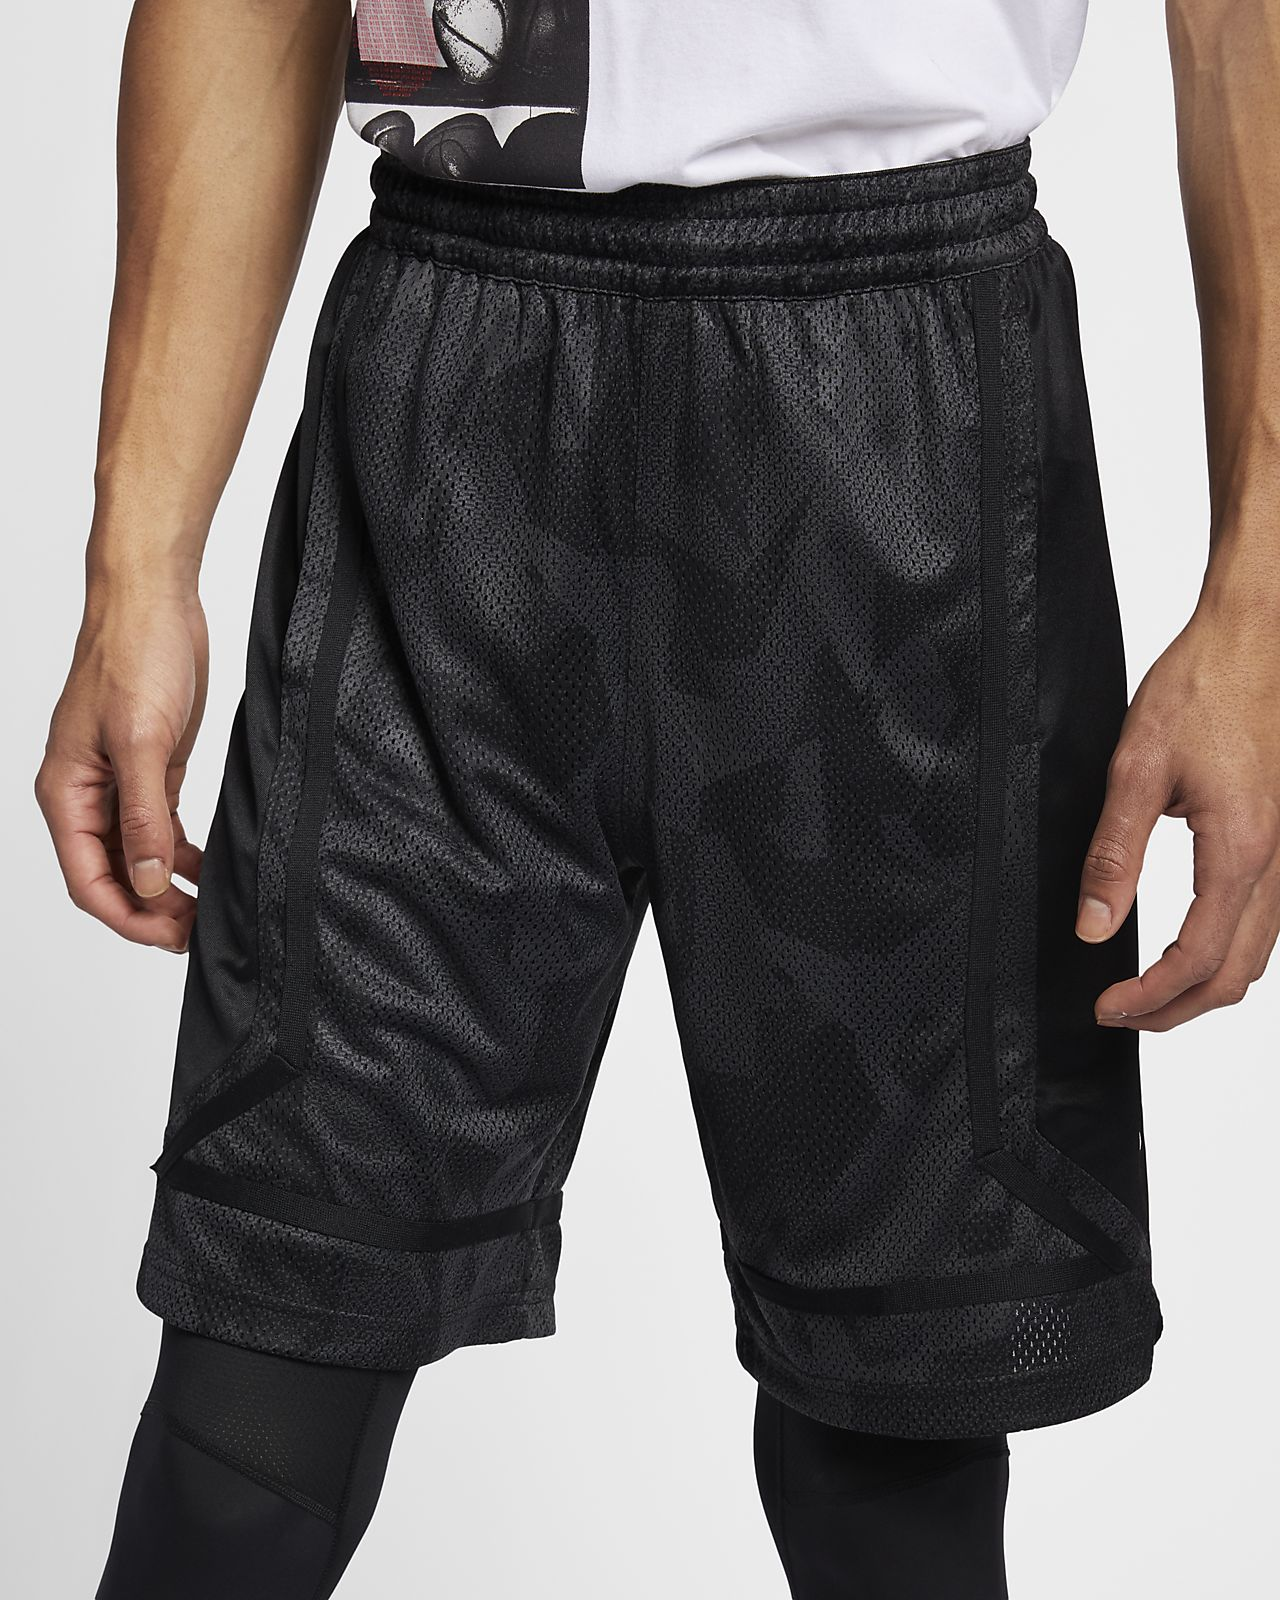 0cc5de67de Kyrie Dri-FIT Elite Men's Basketball Shorts. Nike.com AU